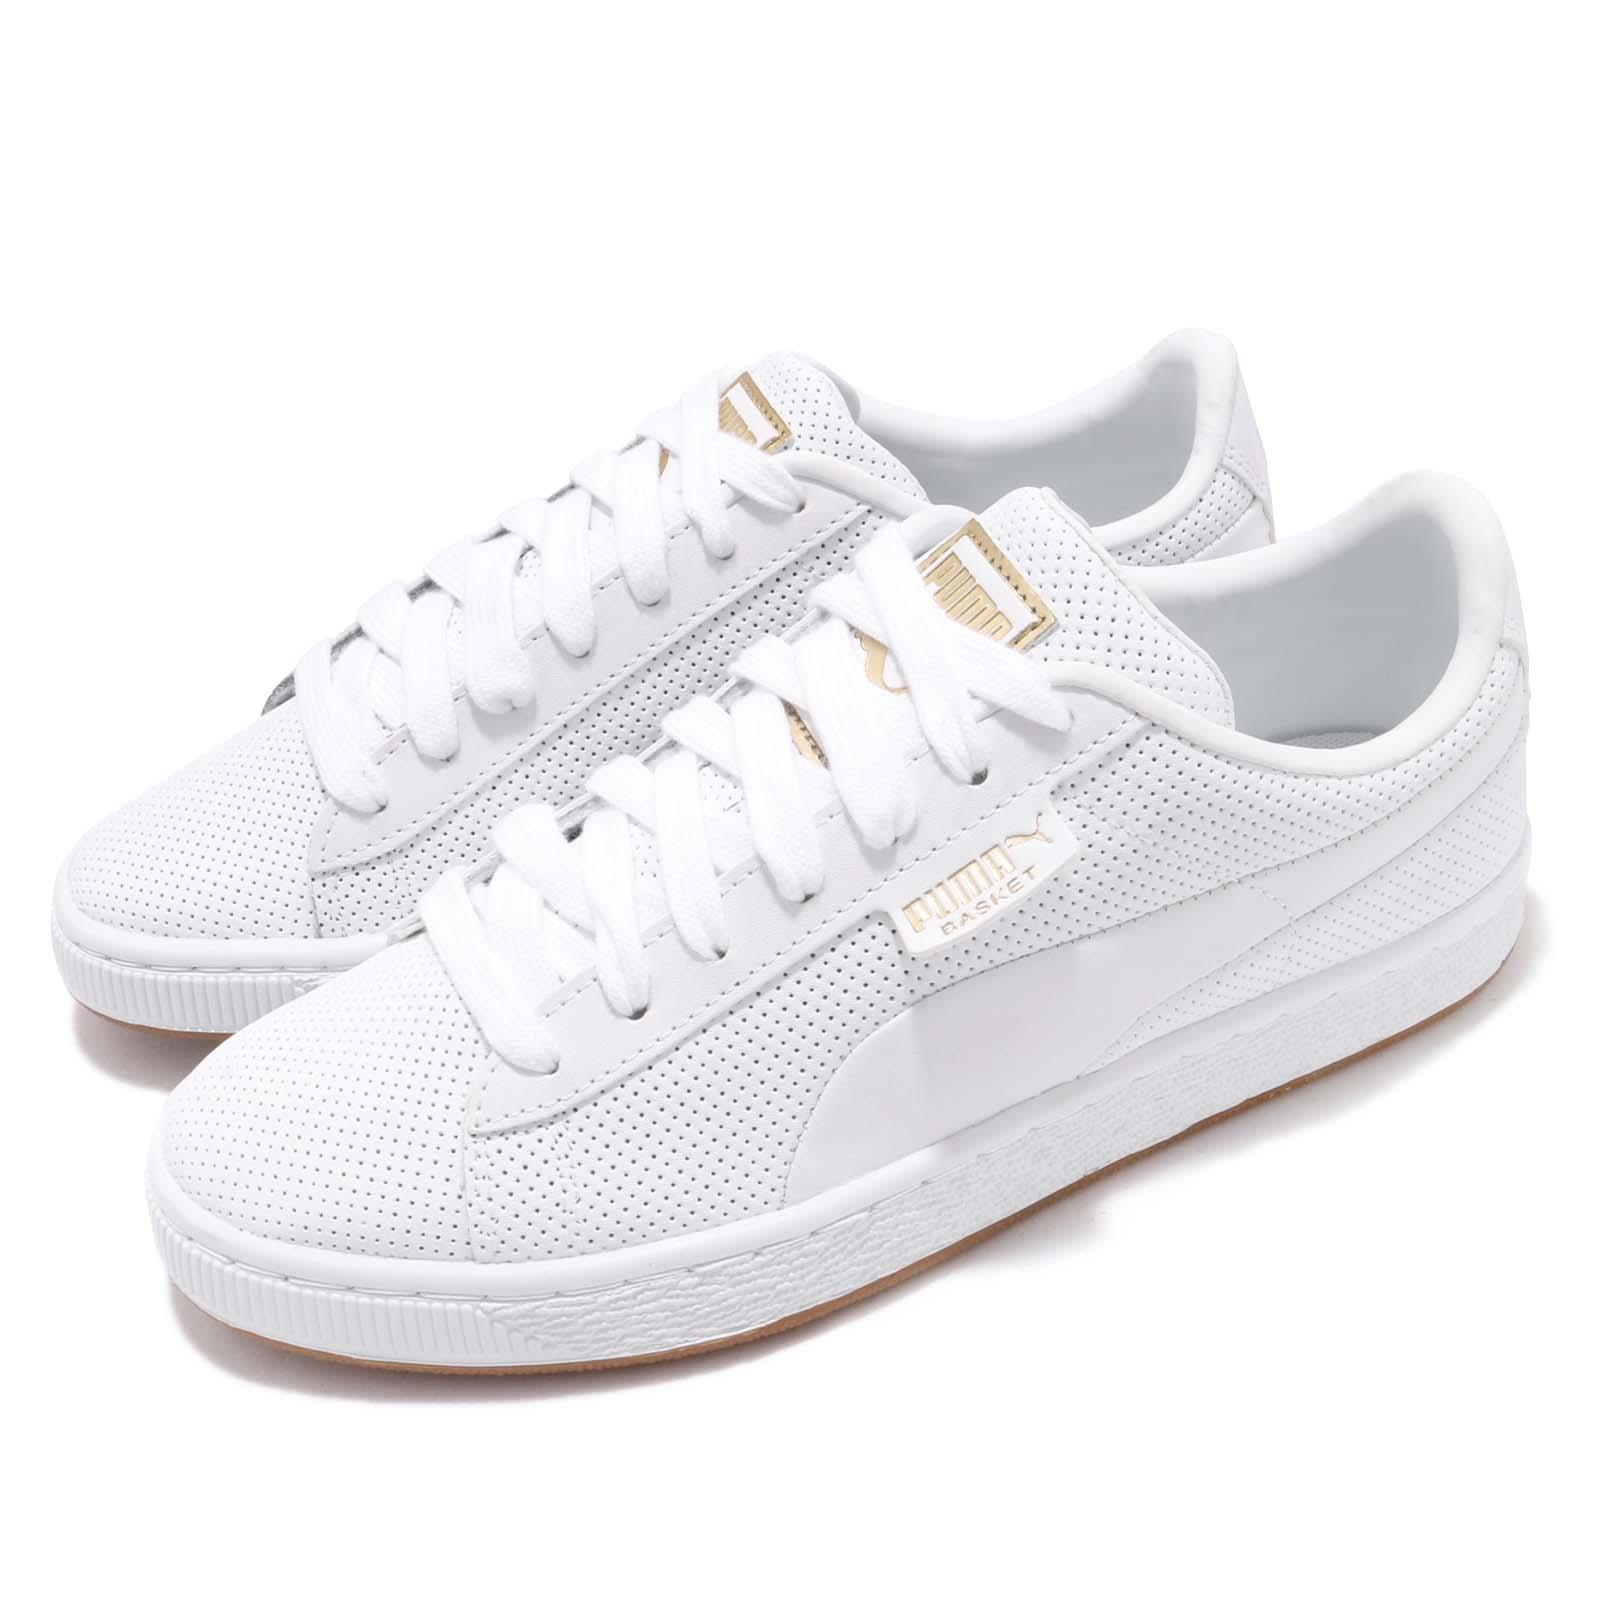 size 40 5f9f5 e808e Details about Puma Basket Classic Gum JR White Gold Kid Junior Casual Shoes  Sneakers 368962-02